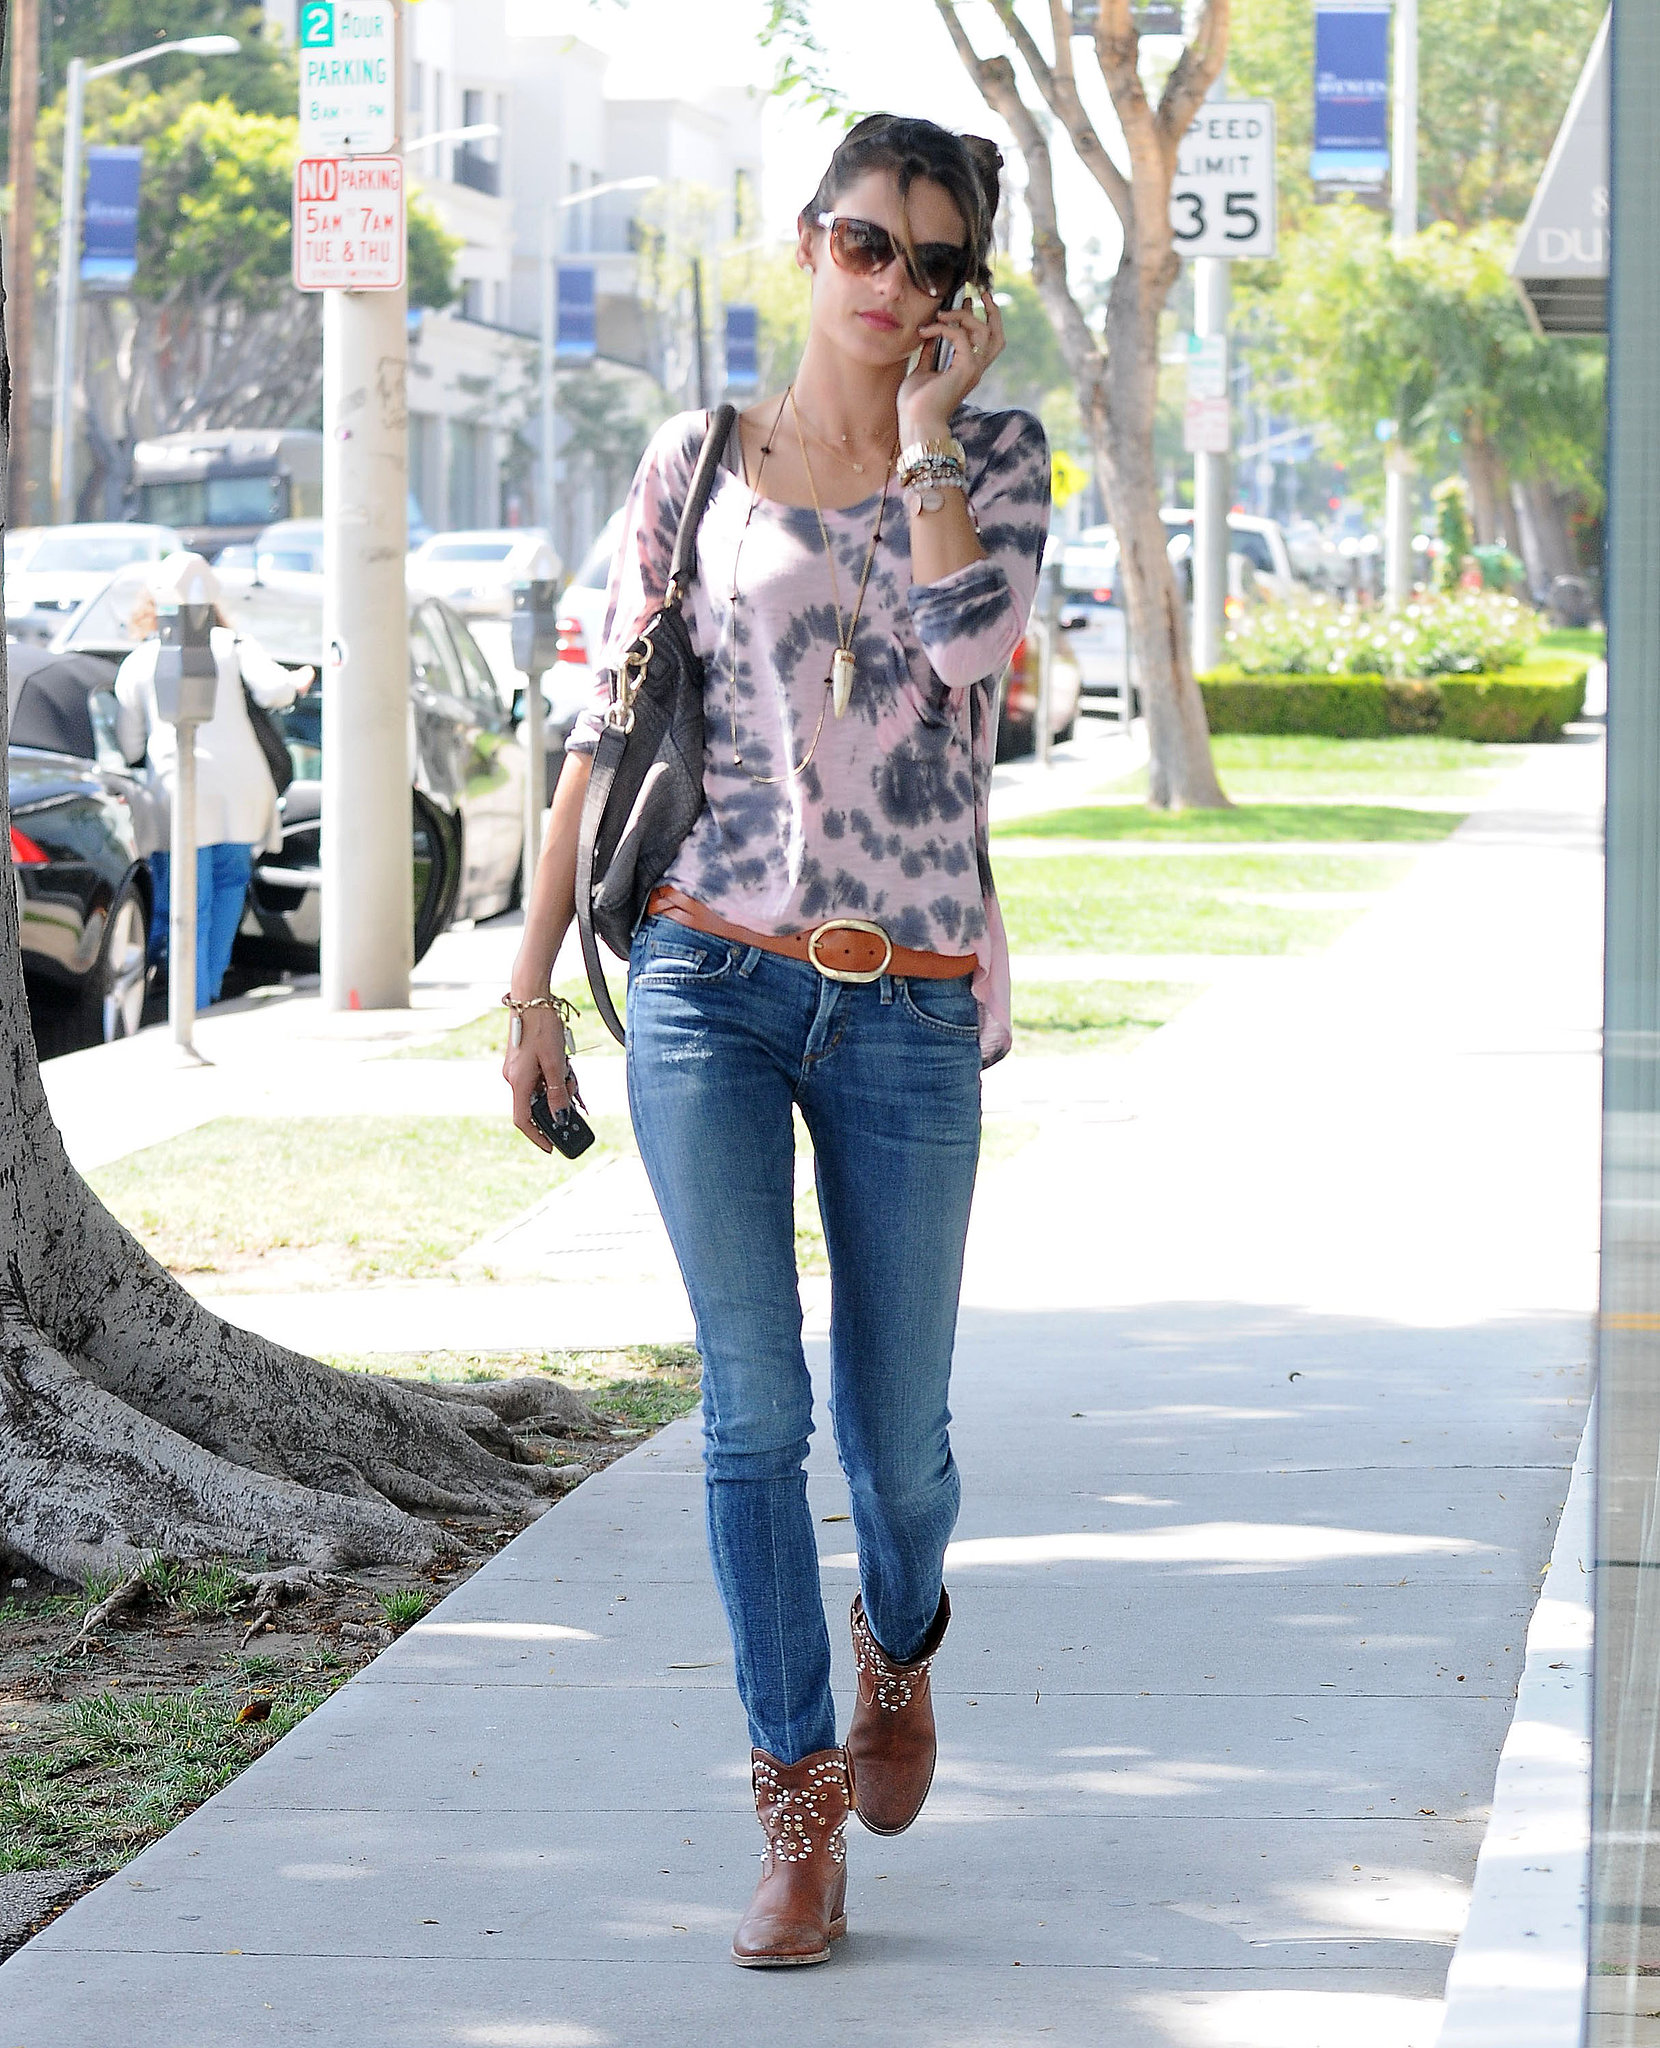 Alessandra Ambrosio worked a tie-dye top with skinny Citizens of Humanity jeans, studded cowboy boo